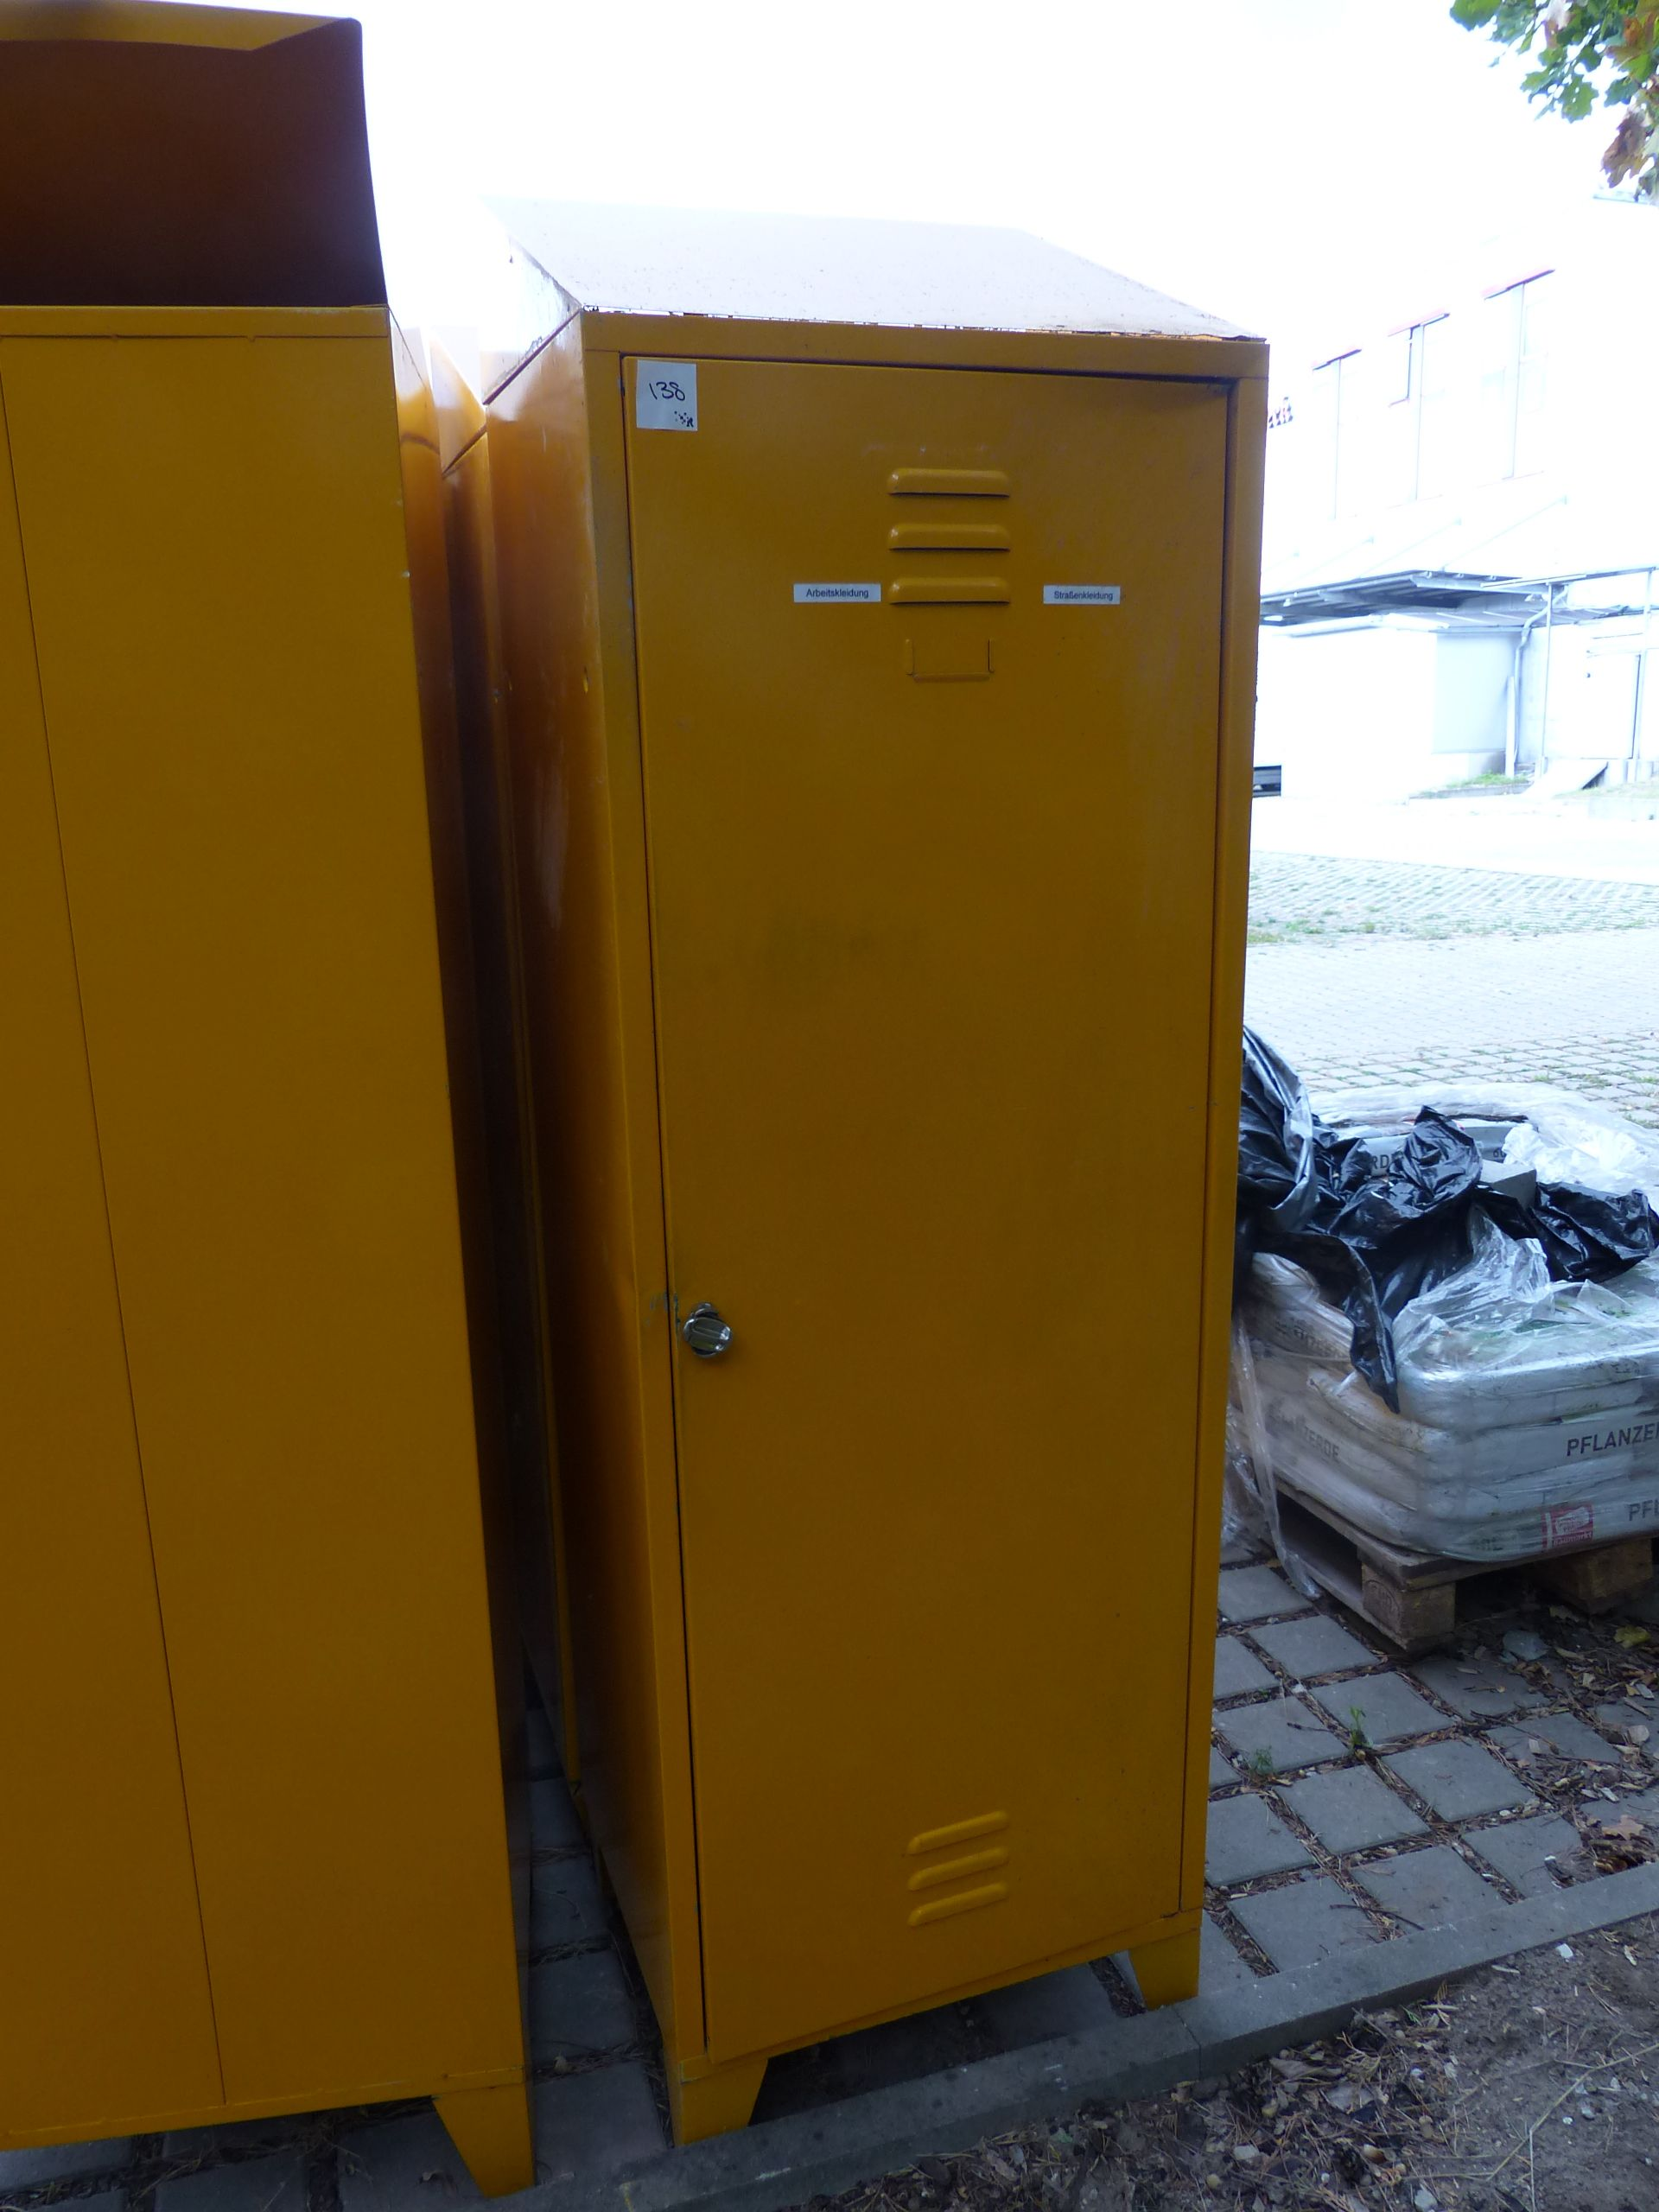 1x Personalspind, Farbe gelb